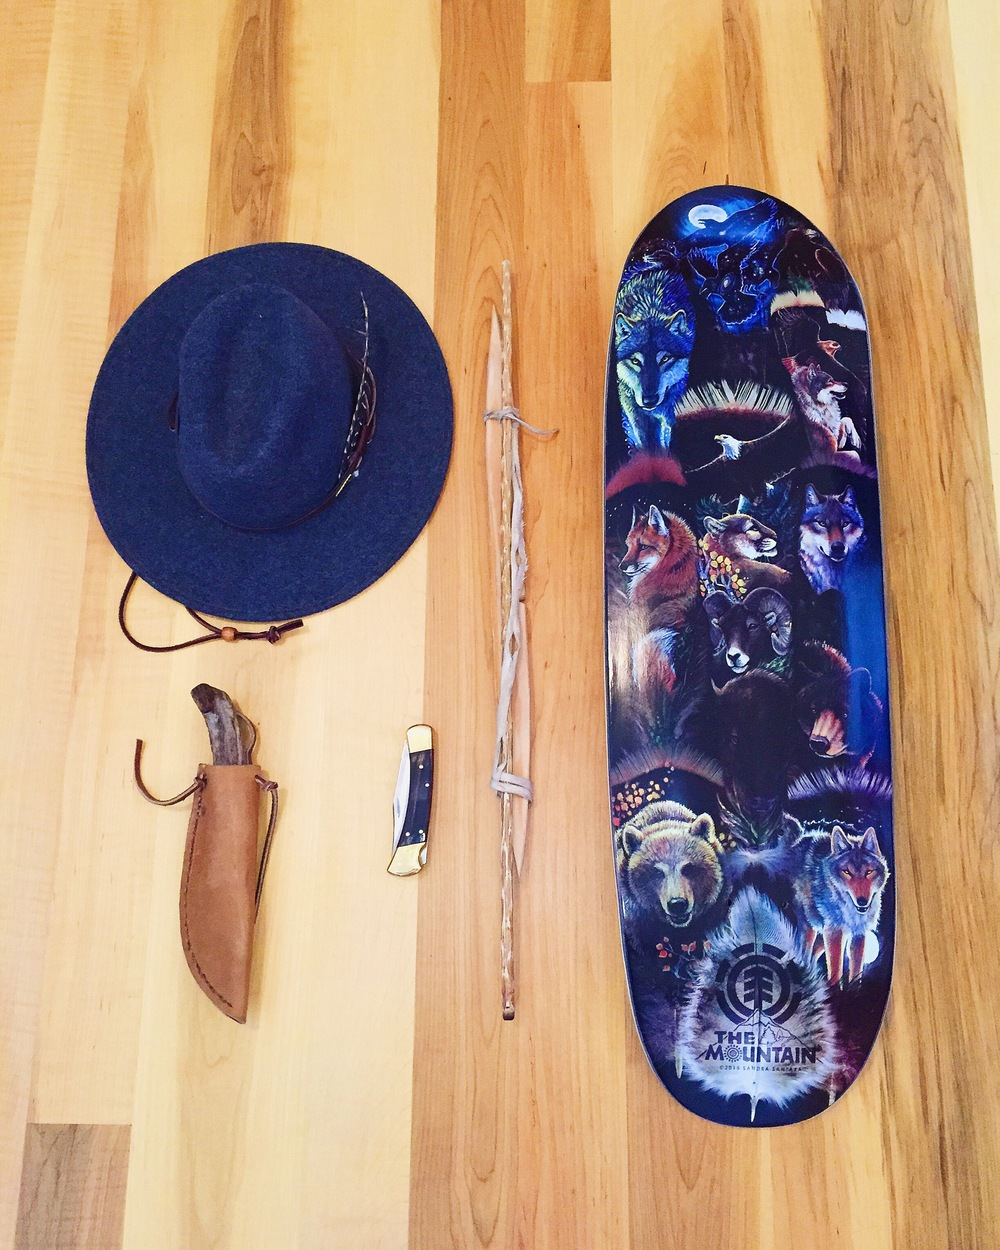 Packing for element skate camp